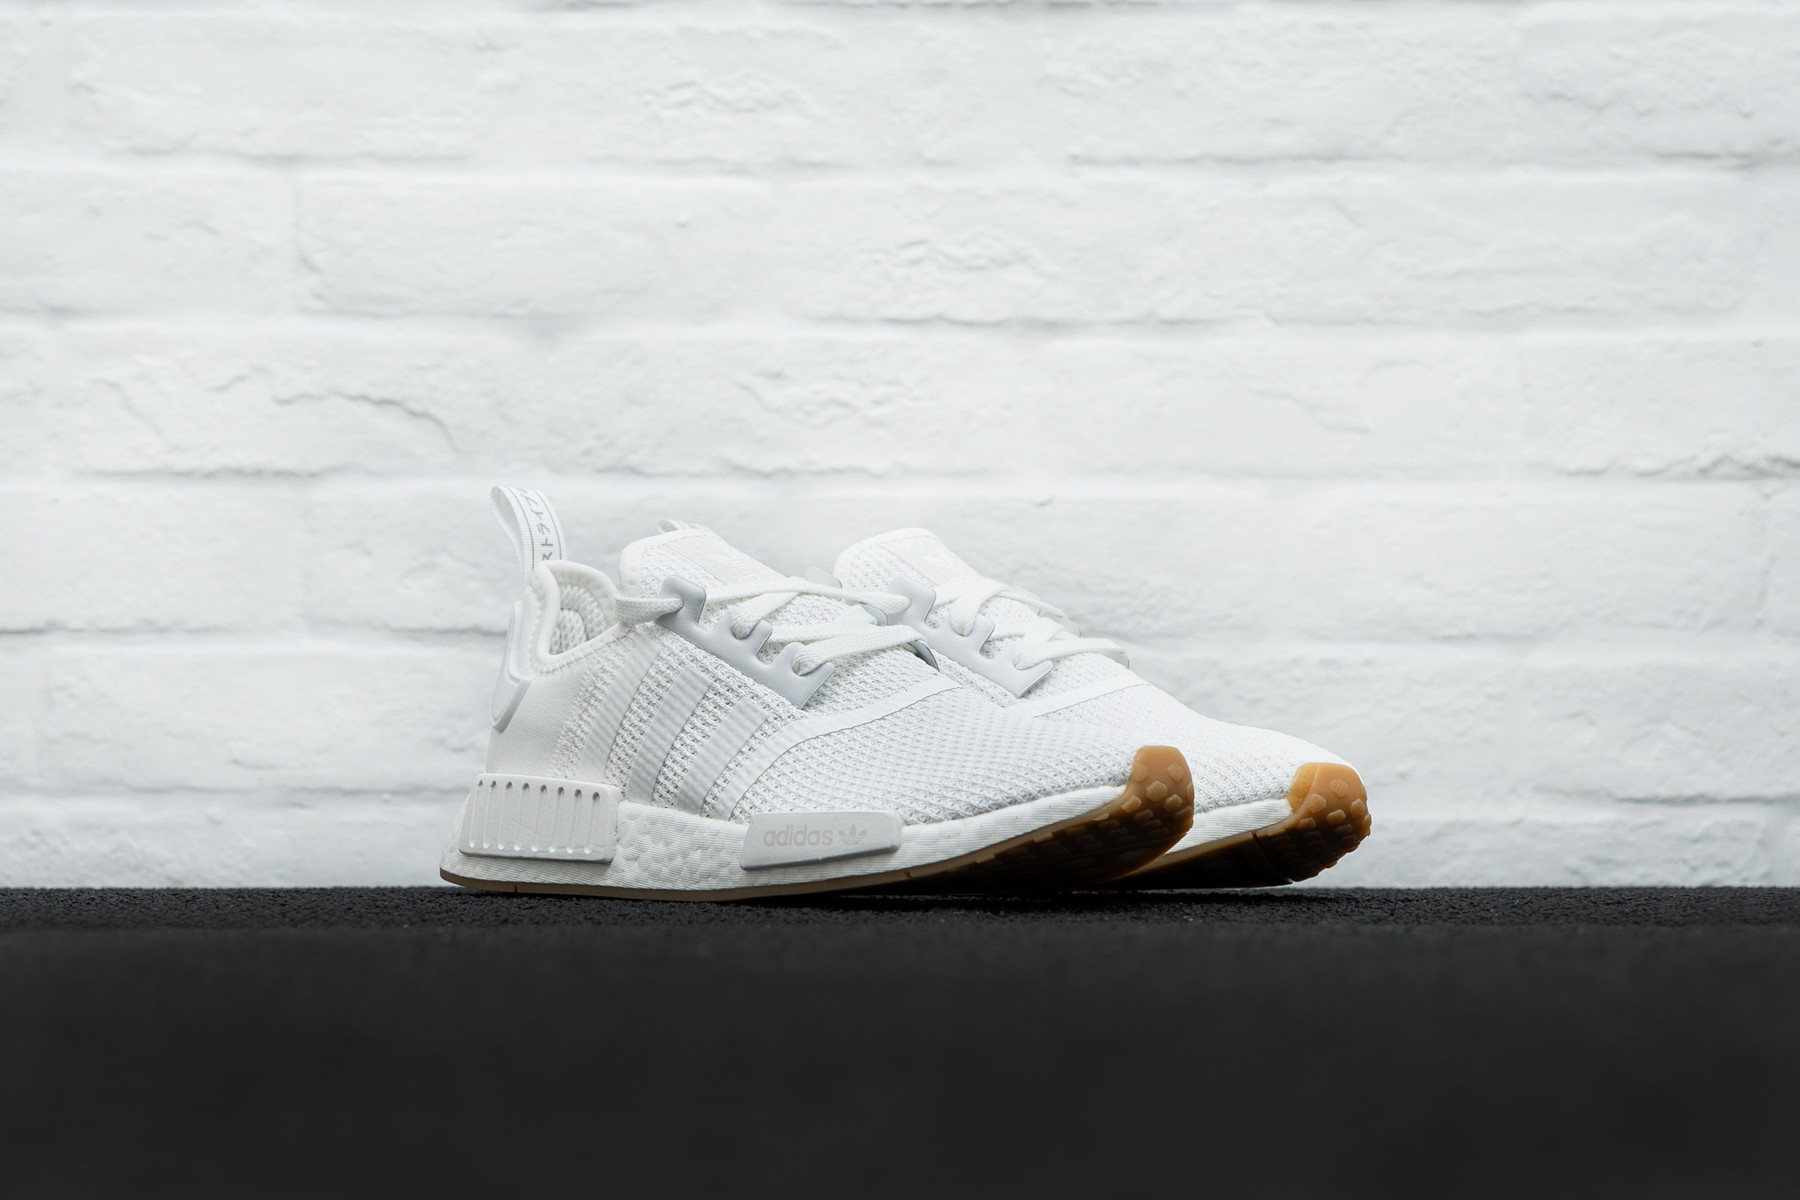 W Adidas NMD R1 Sneaker.no